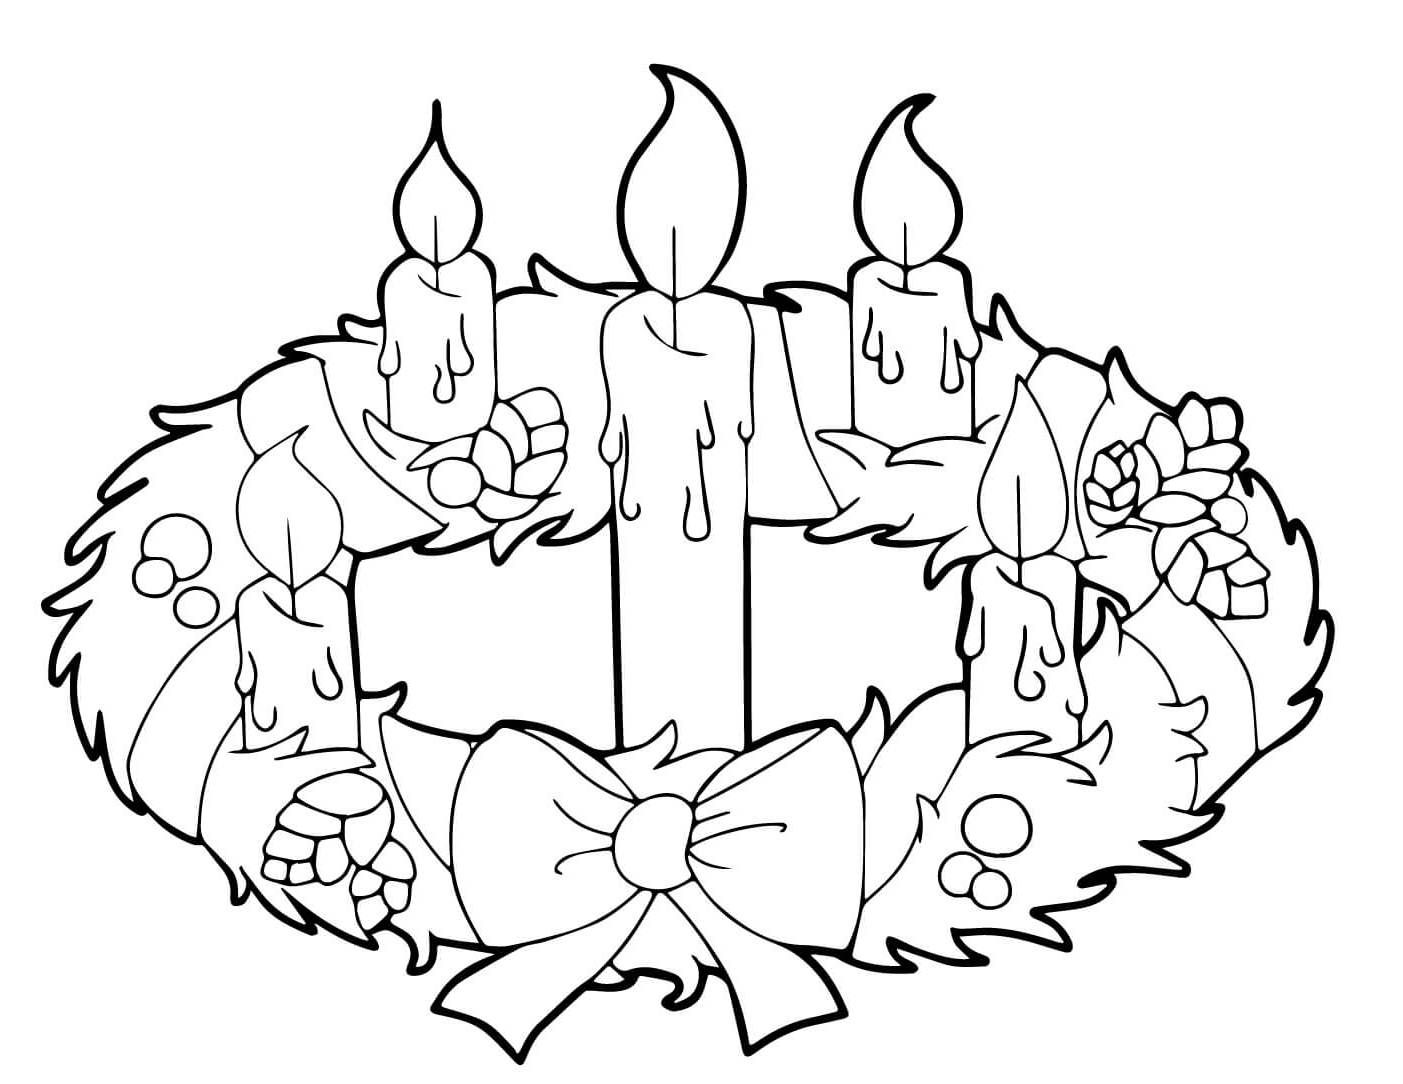 Pin By Maria On Rozmalovki Wreath Drawing Coloring Pages Advent Wreath